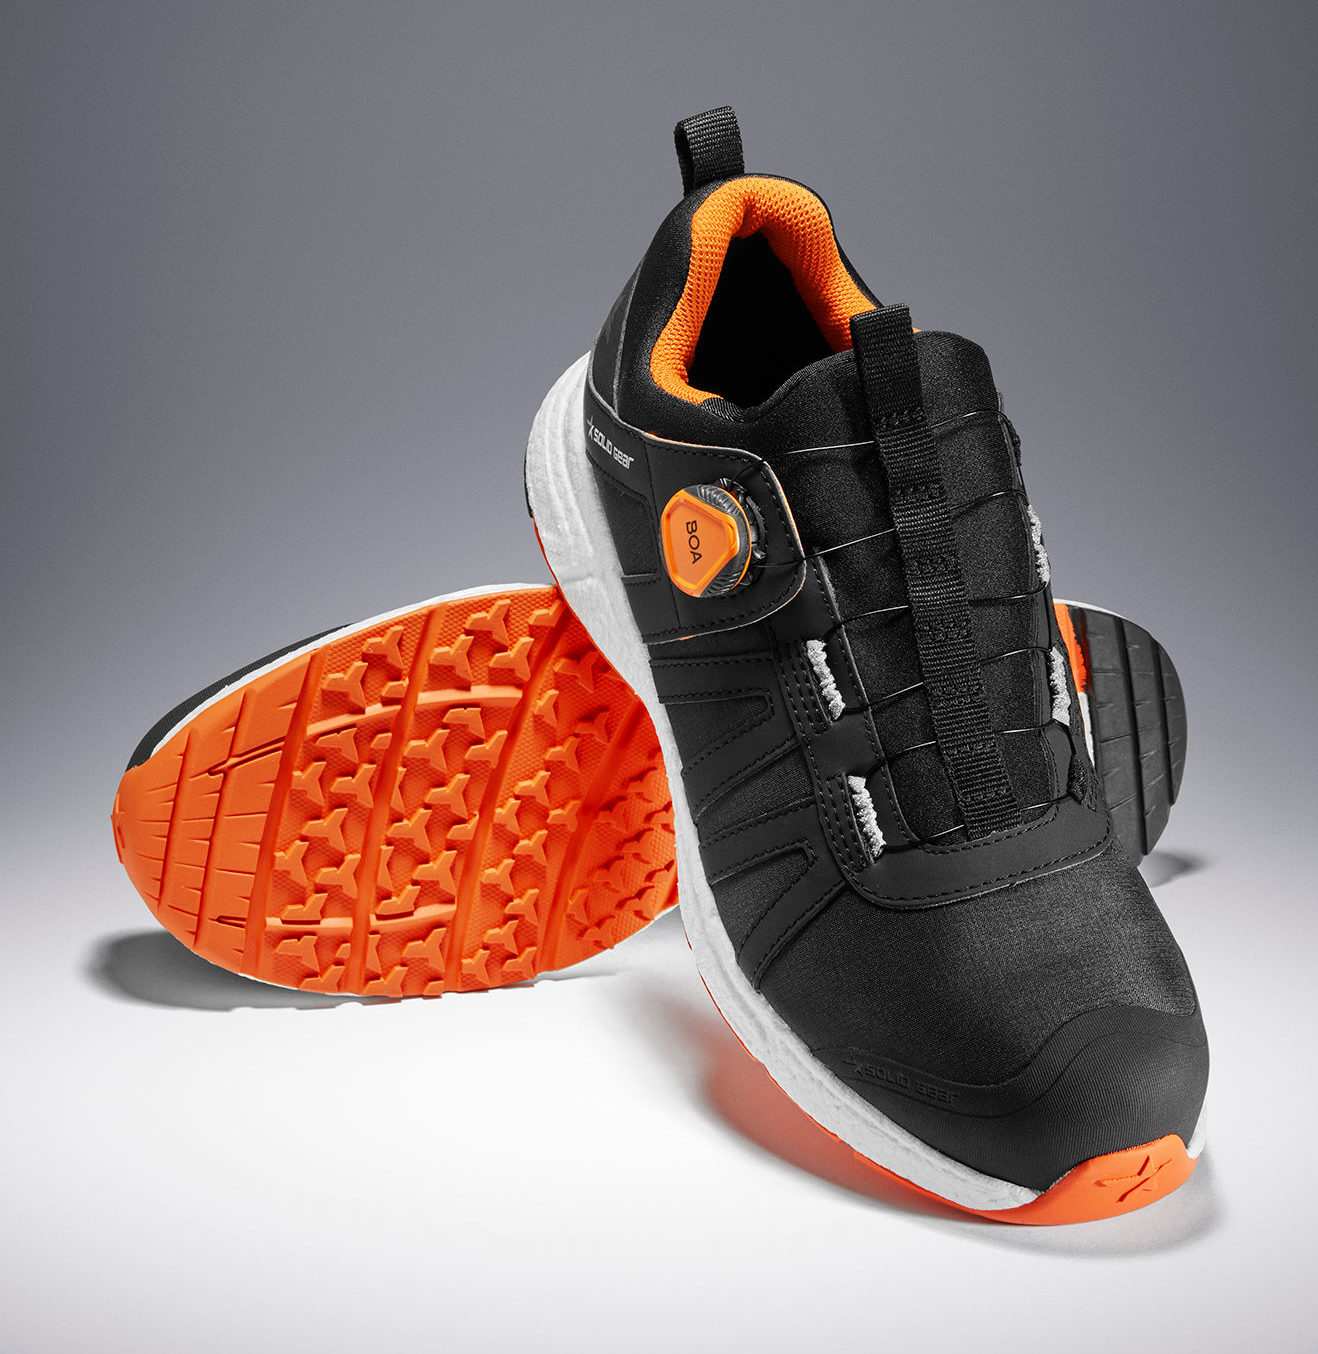 Solid Gear Safety Footwear's latest safety shoe is a market-leading product, combining the best in safety and sports footwear technology.